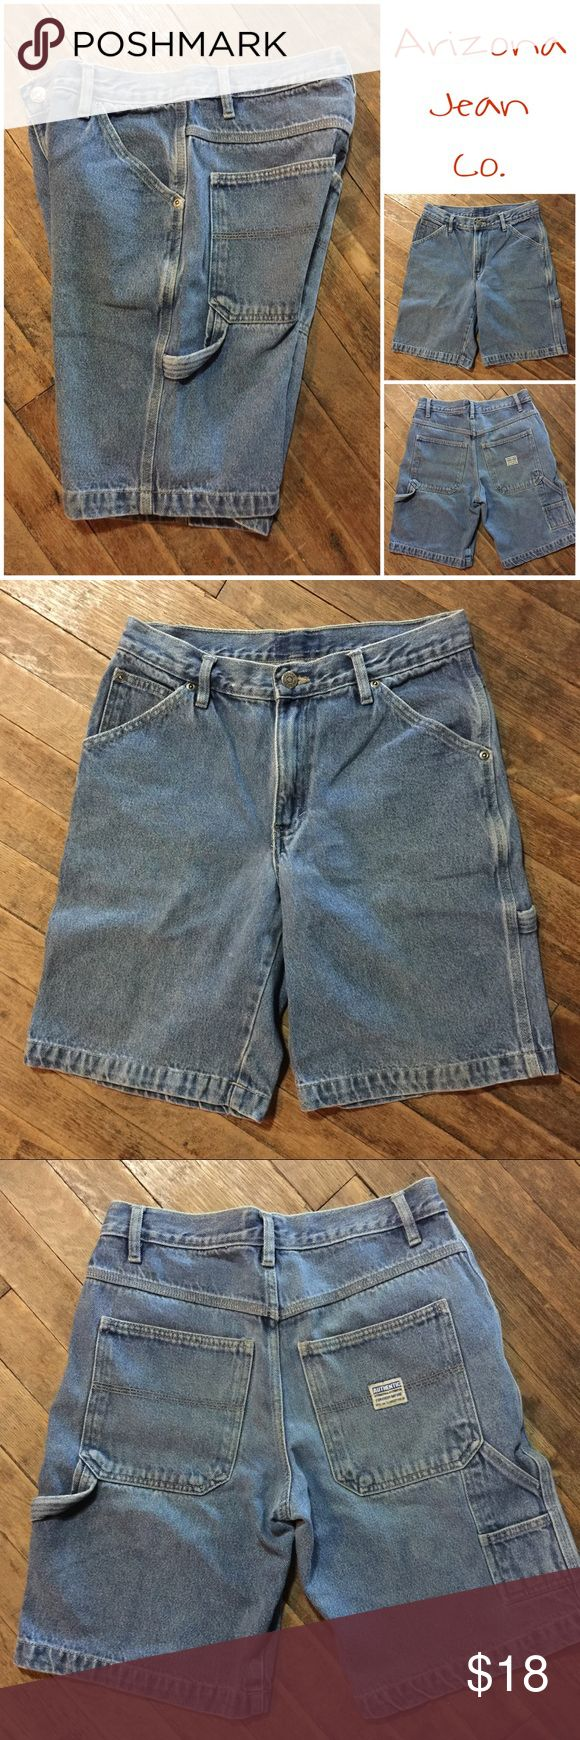 Arizona Jean Co. Shorts Men's size 30 #287 Arizona Jean Company Shorts Size 30. Good condition. All orders are shipped same or next business day. Bundle to save even more money! Arizona Jean Company Shorts Jean Shorts